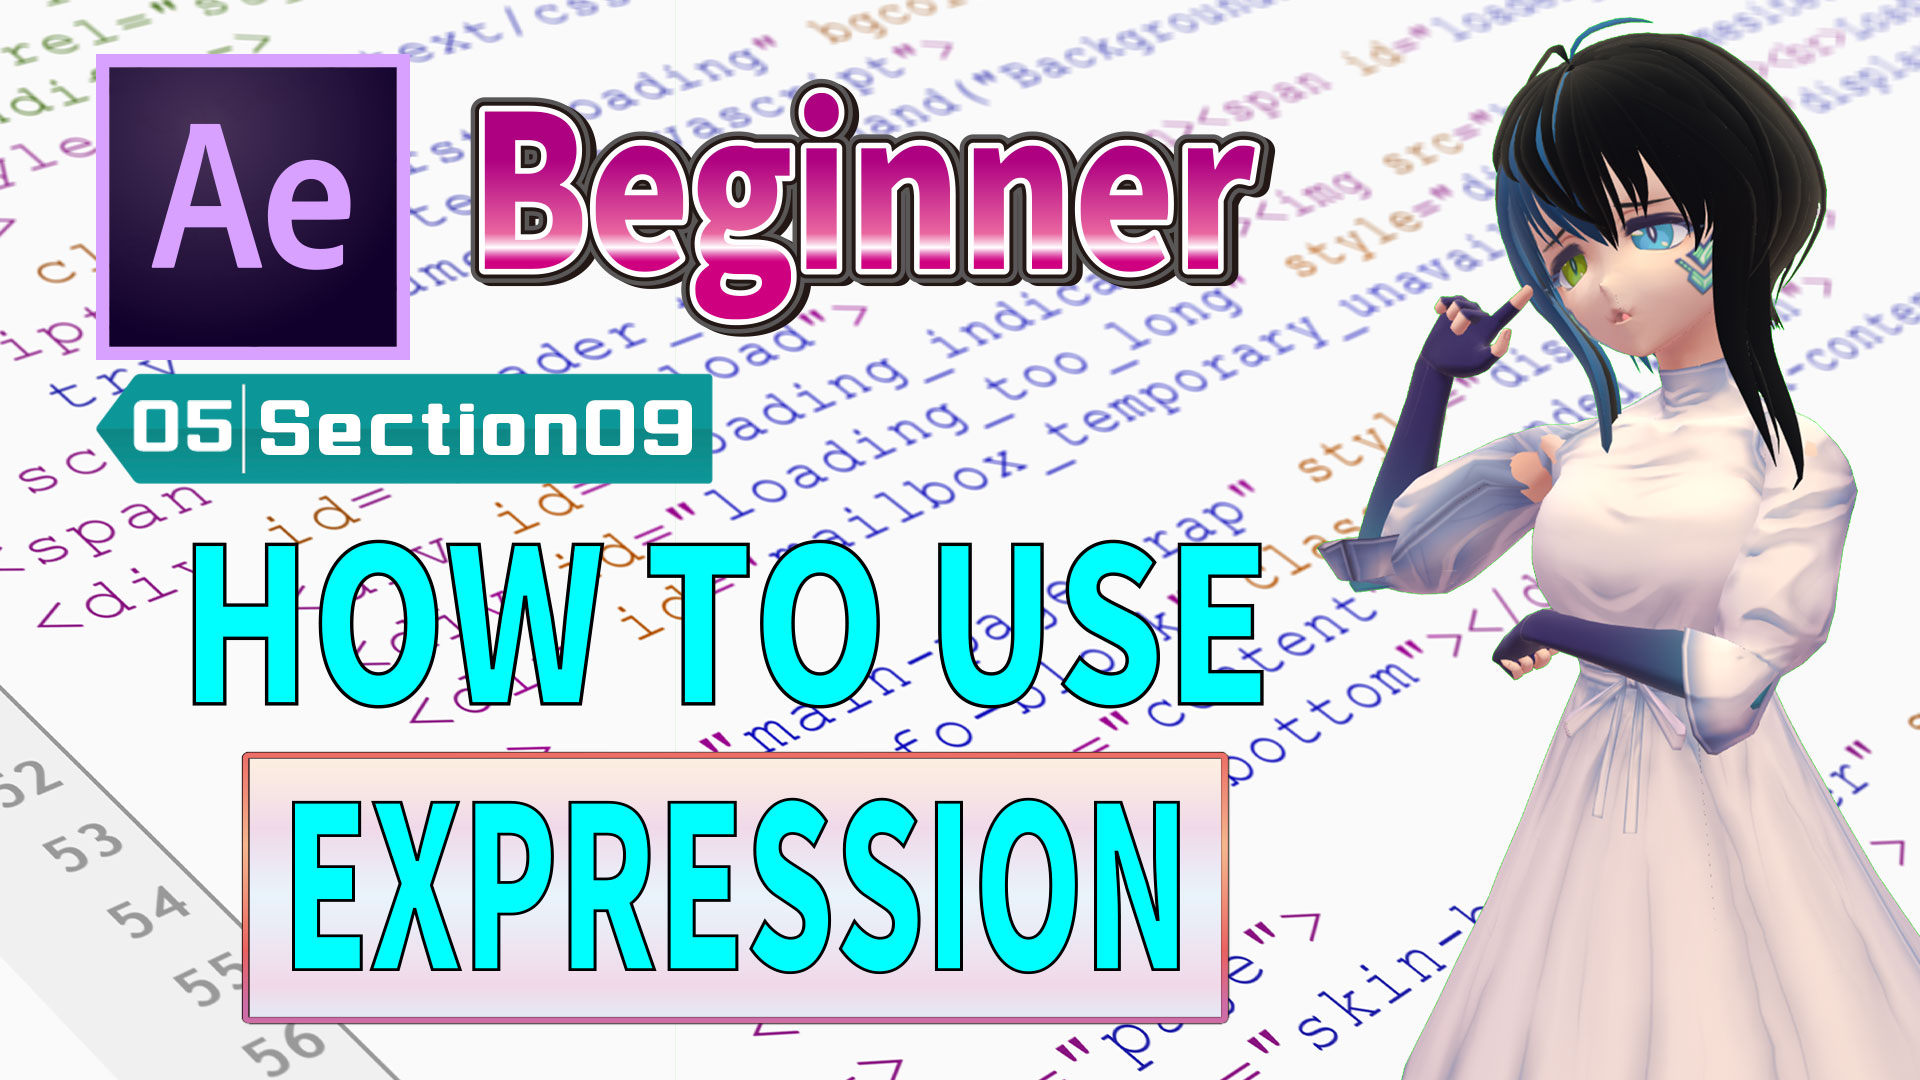 HOW TO USE EXPRESSION